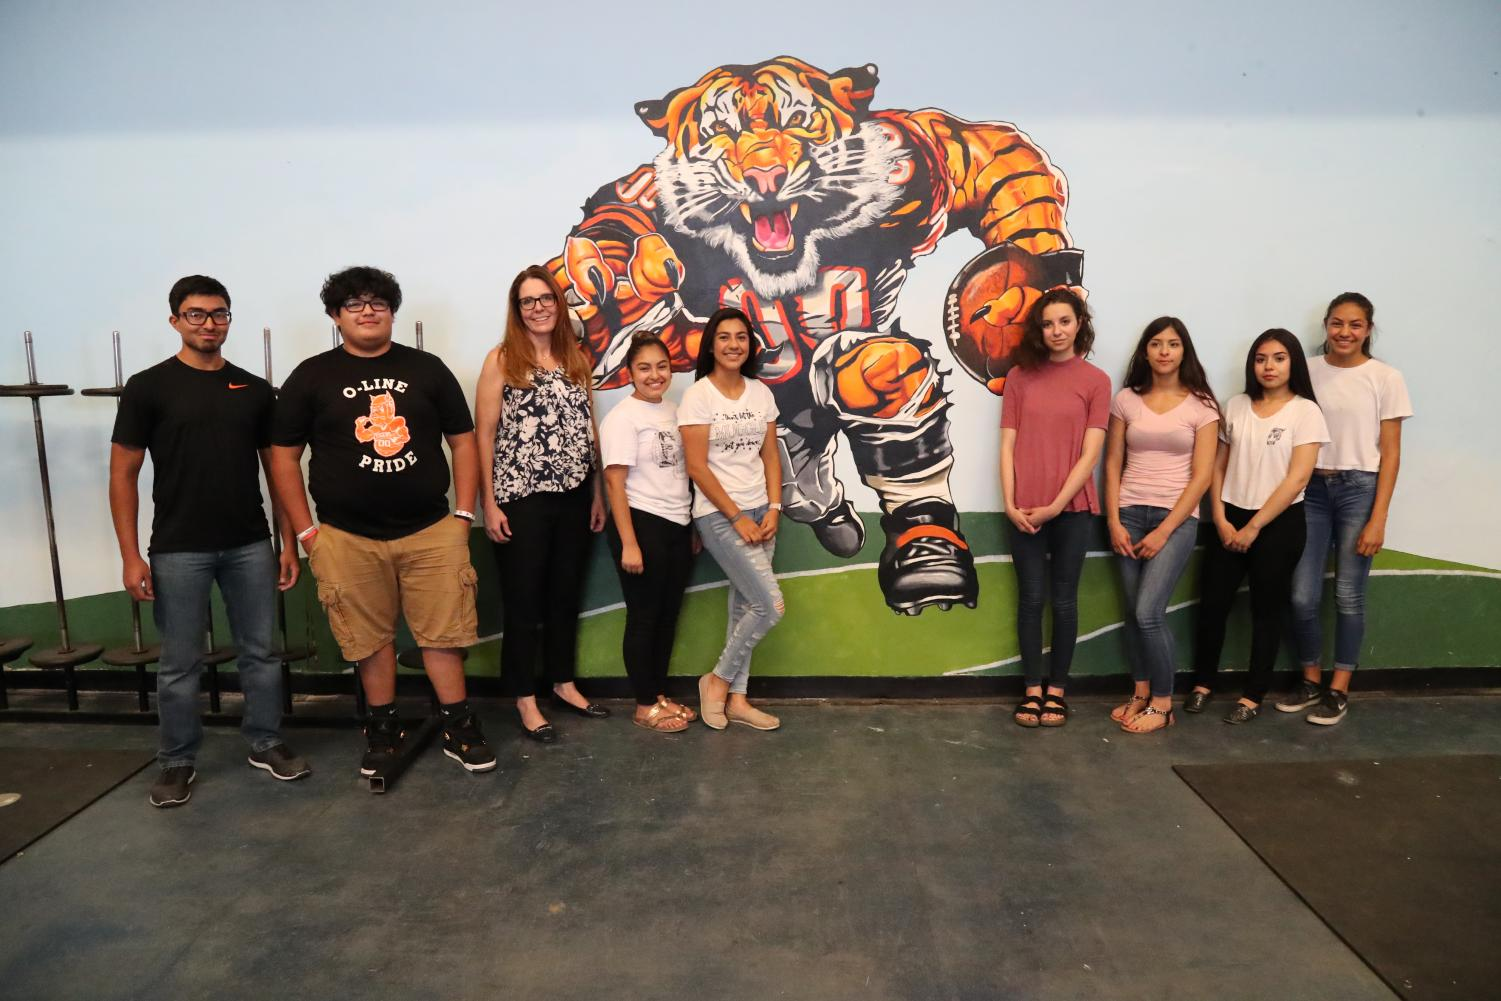 Mrs. Garrison and students reveal their mural inside the school's weight room.